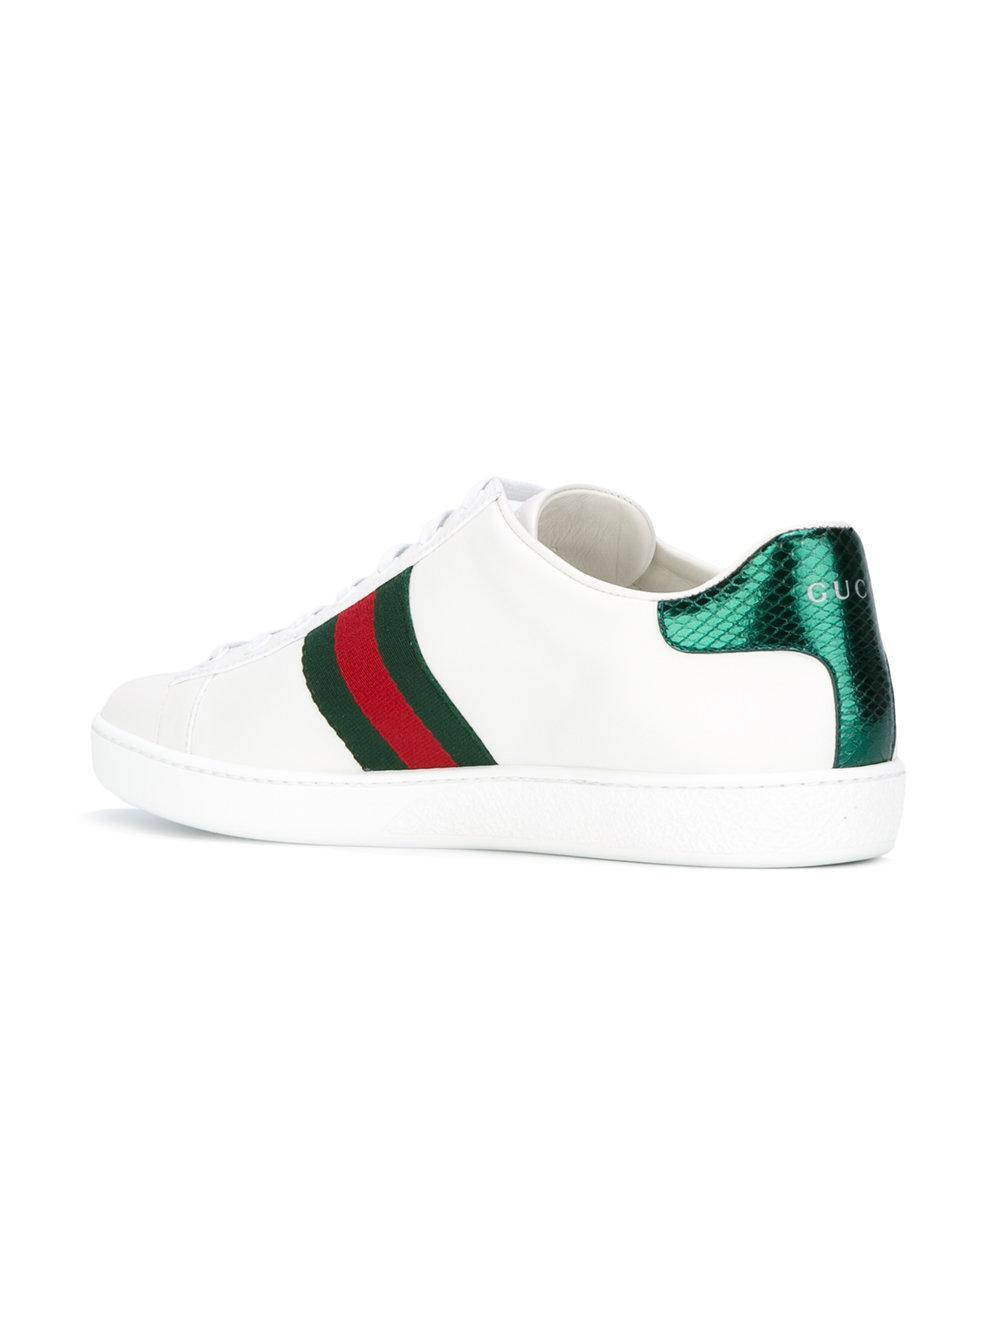 e73caa458 Gucci Gg Vintage Web Safety Pin Sneakers in White - Lyst